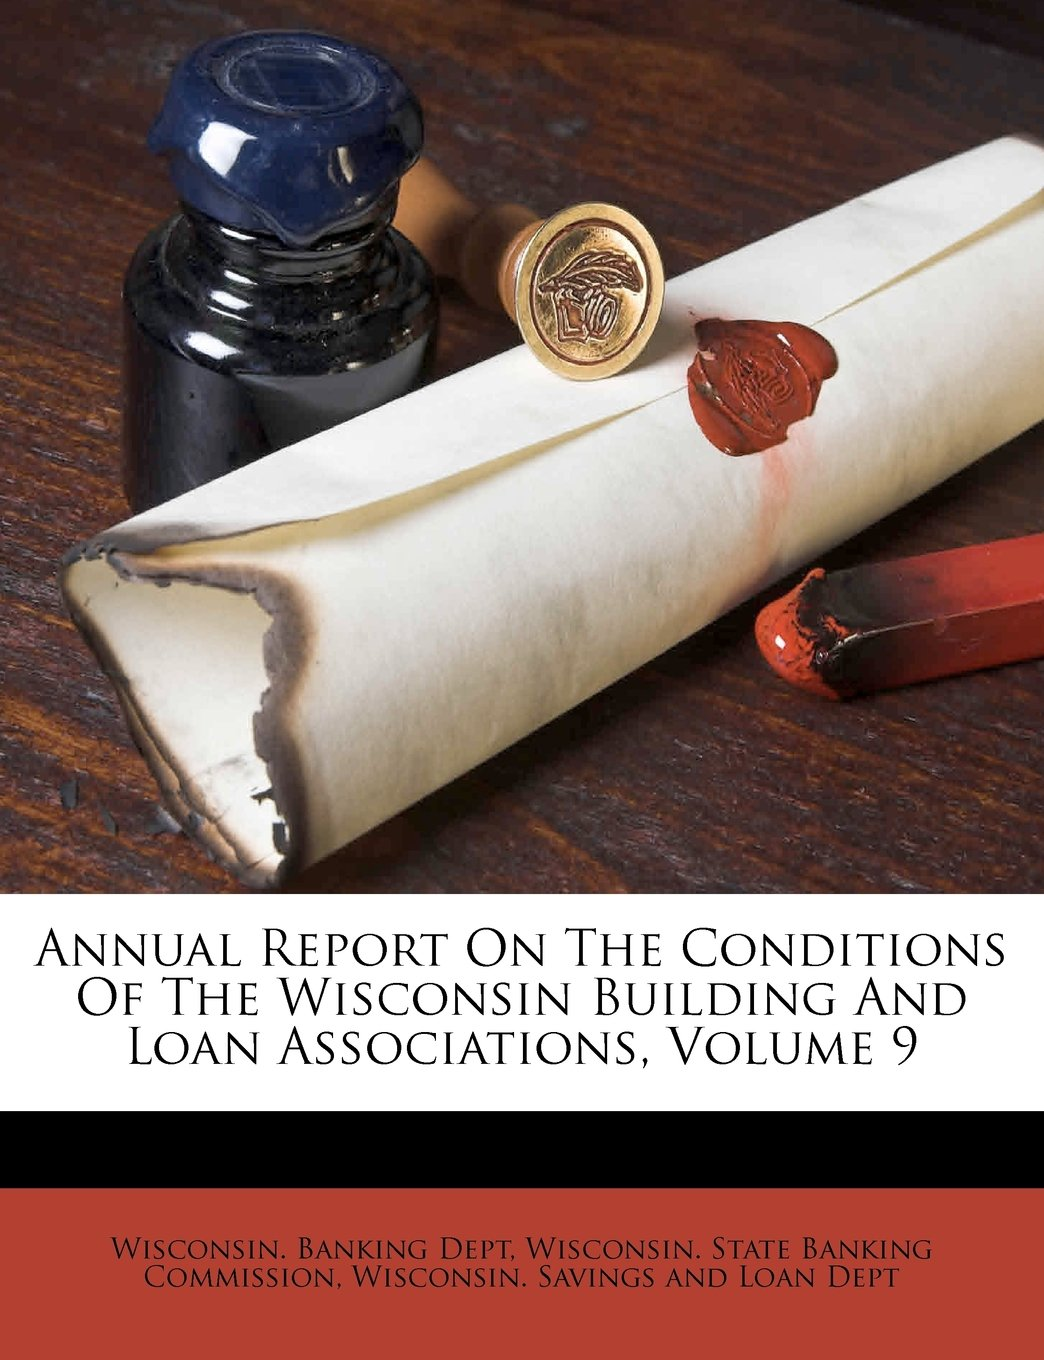 Annual Report On The Conditions Of The Wisconsin Building And Loan Associations, Volume 9 ebook